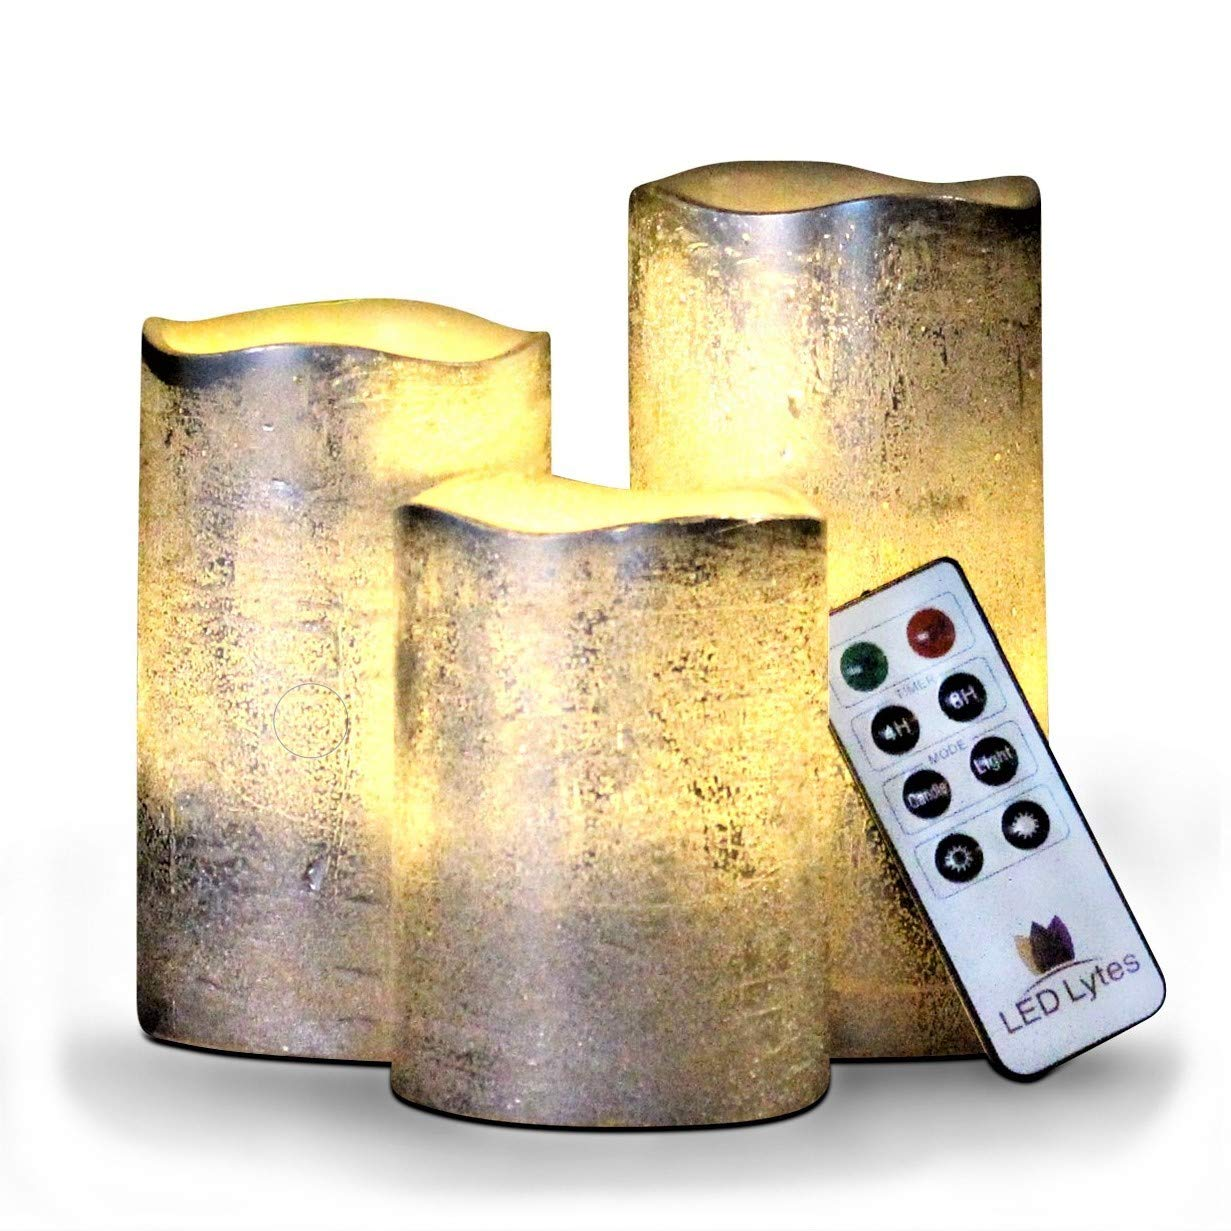 auto-Off Timer Remote Control by LED Lytes Battery Operated Flameless Candles Set of 3 Round Rustic Silver Coated Ivory Wax with Warm White Flame Flickering LED Candles